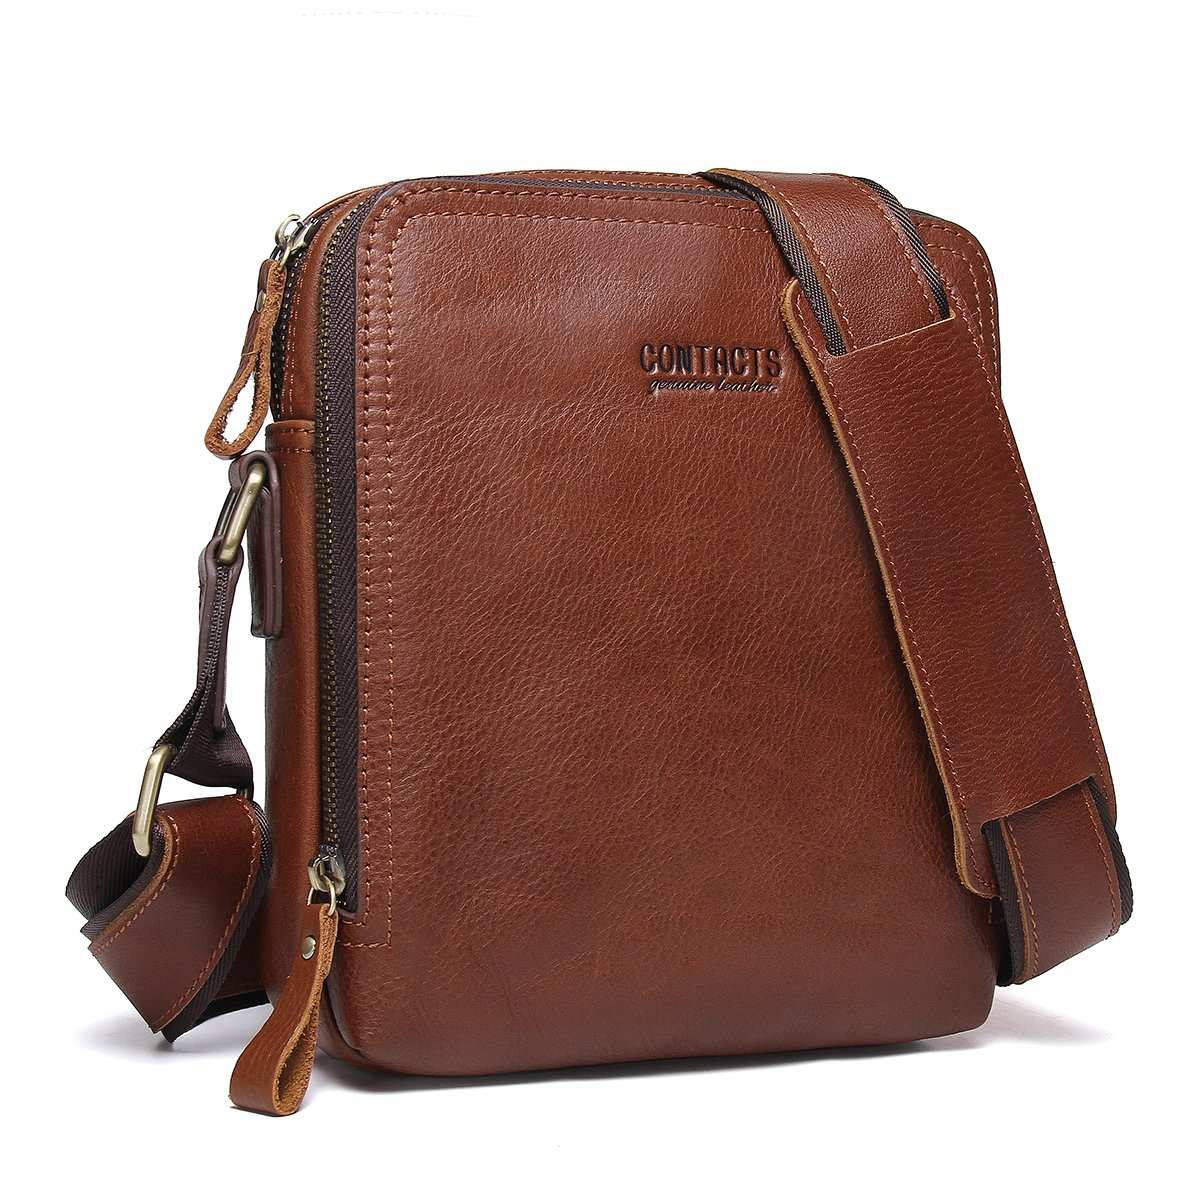 Contacts Genuine Leather Mens iPad Messenger CrossBody Bag Tab Handbag Brown